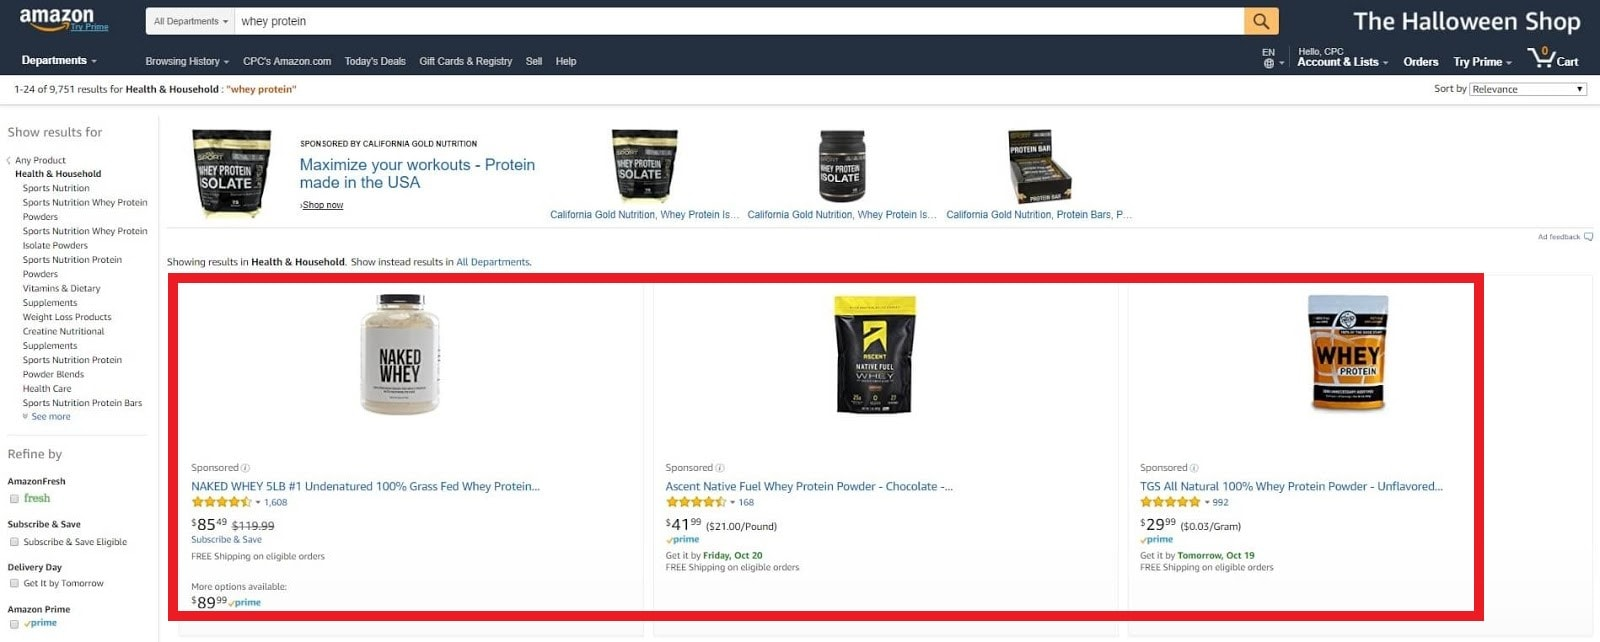 Amazon's Search Engine Ranking Algorithm: What Marketers